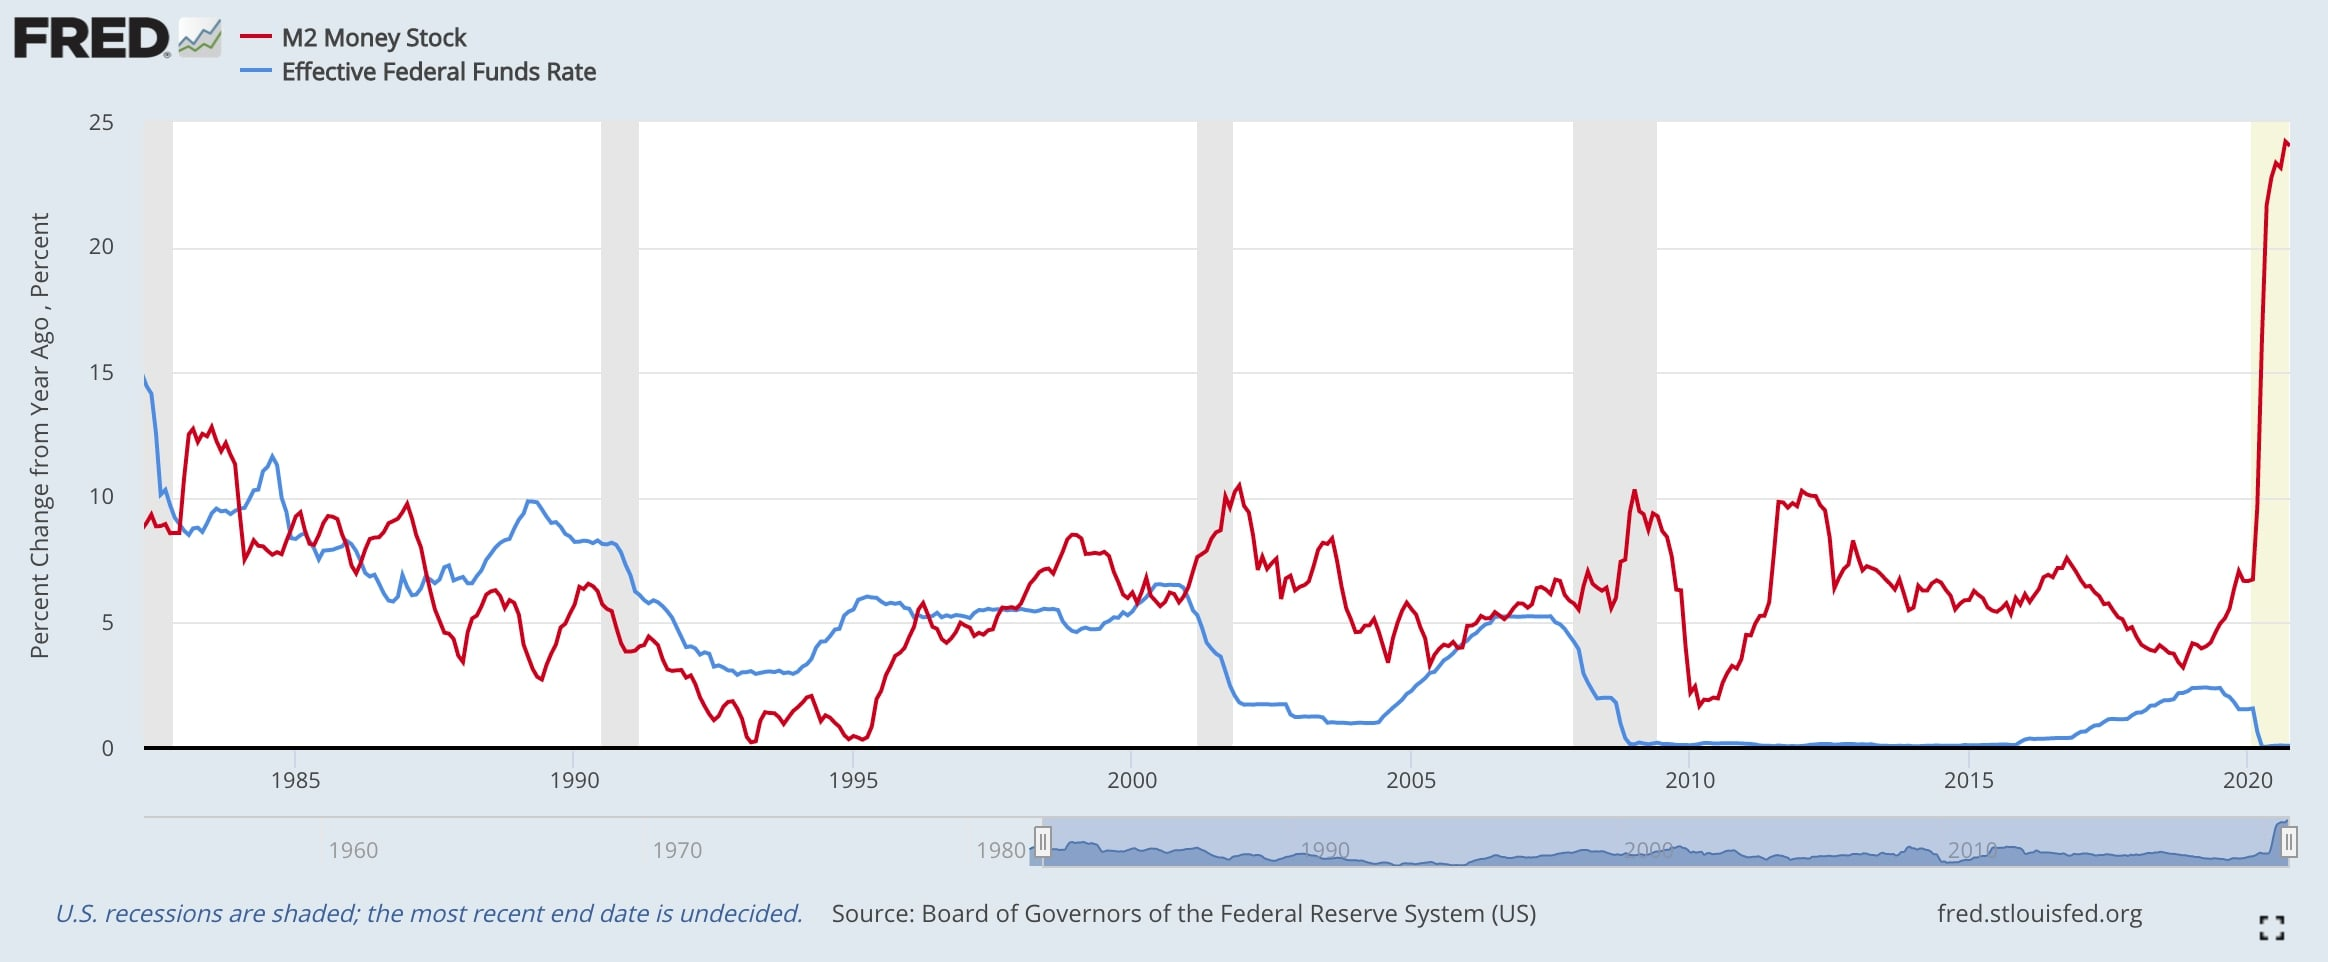 FED Interest rate compared to M2 Money supply